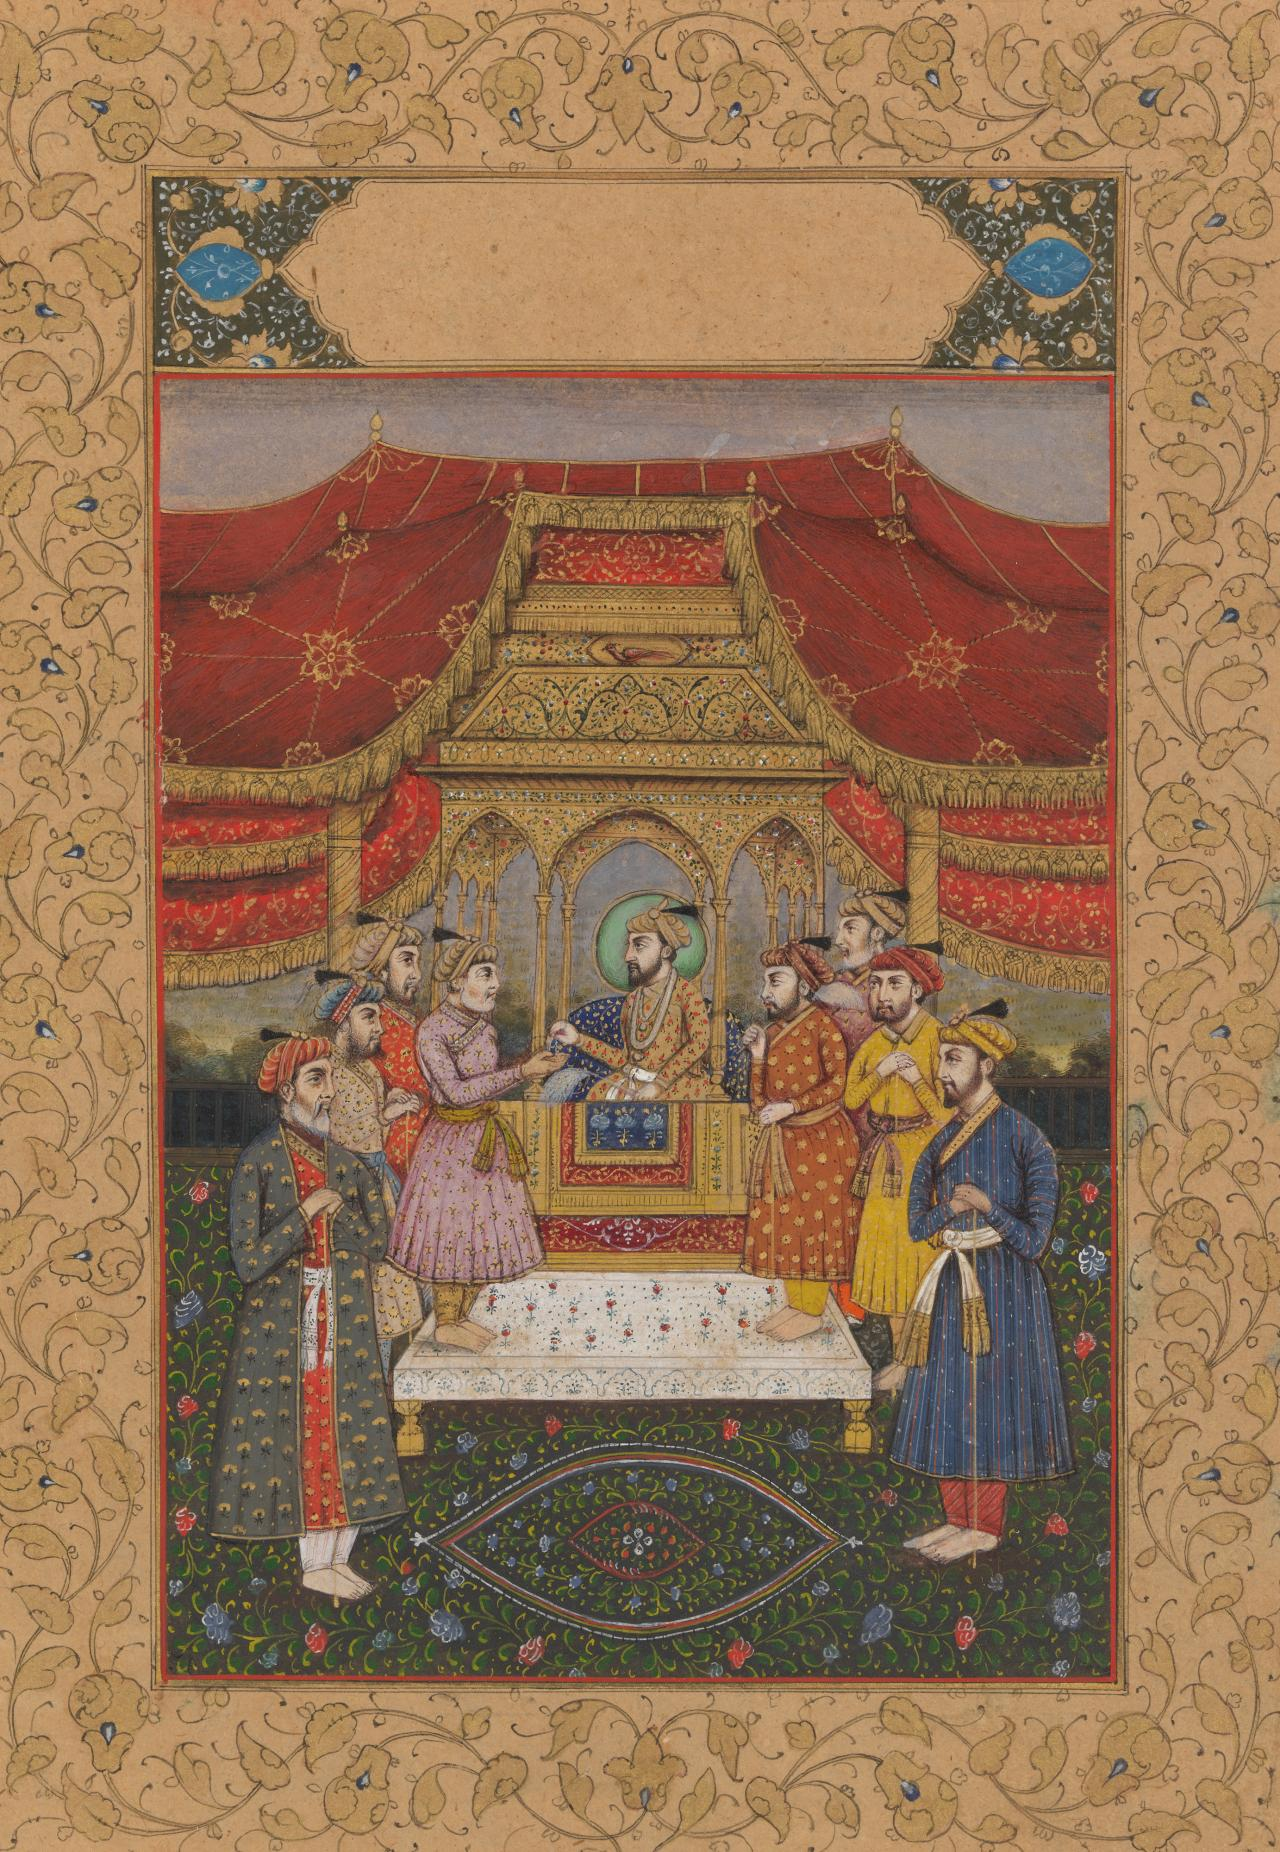 A Mughal emperor with courtiers